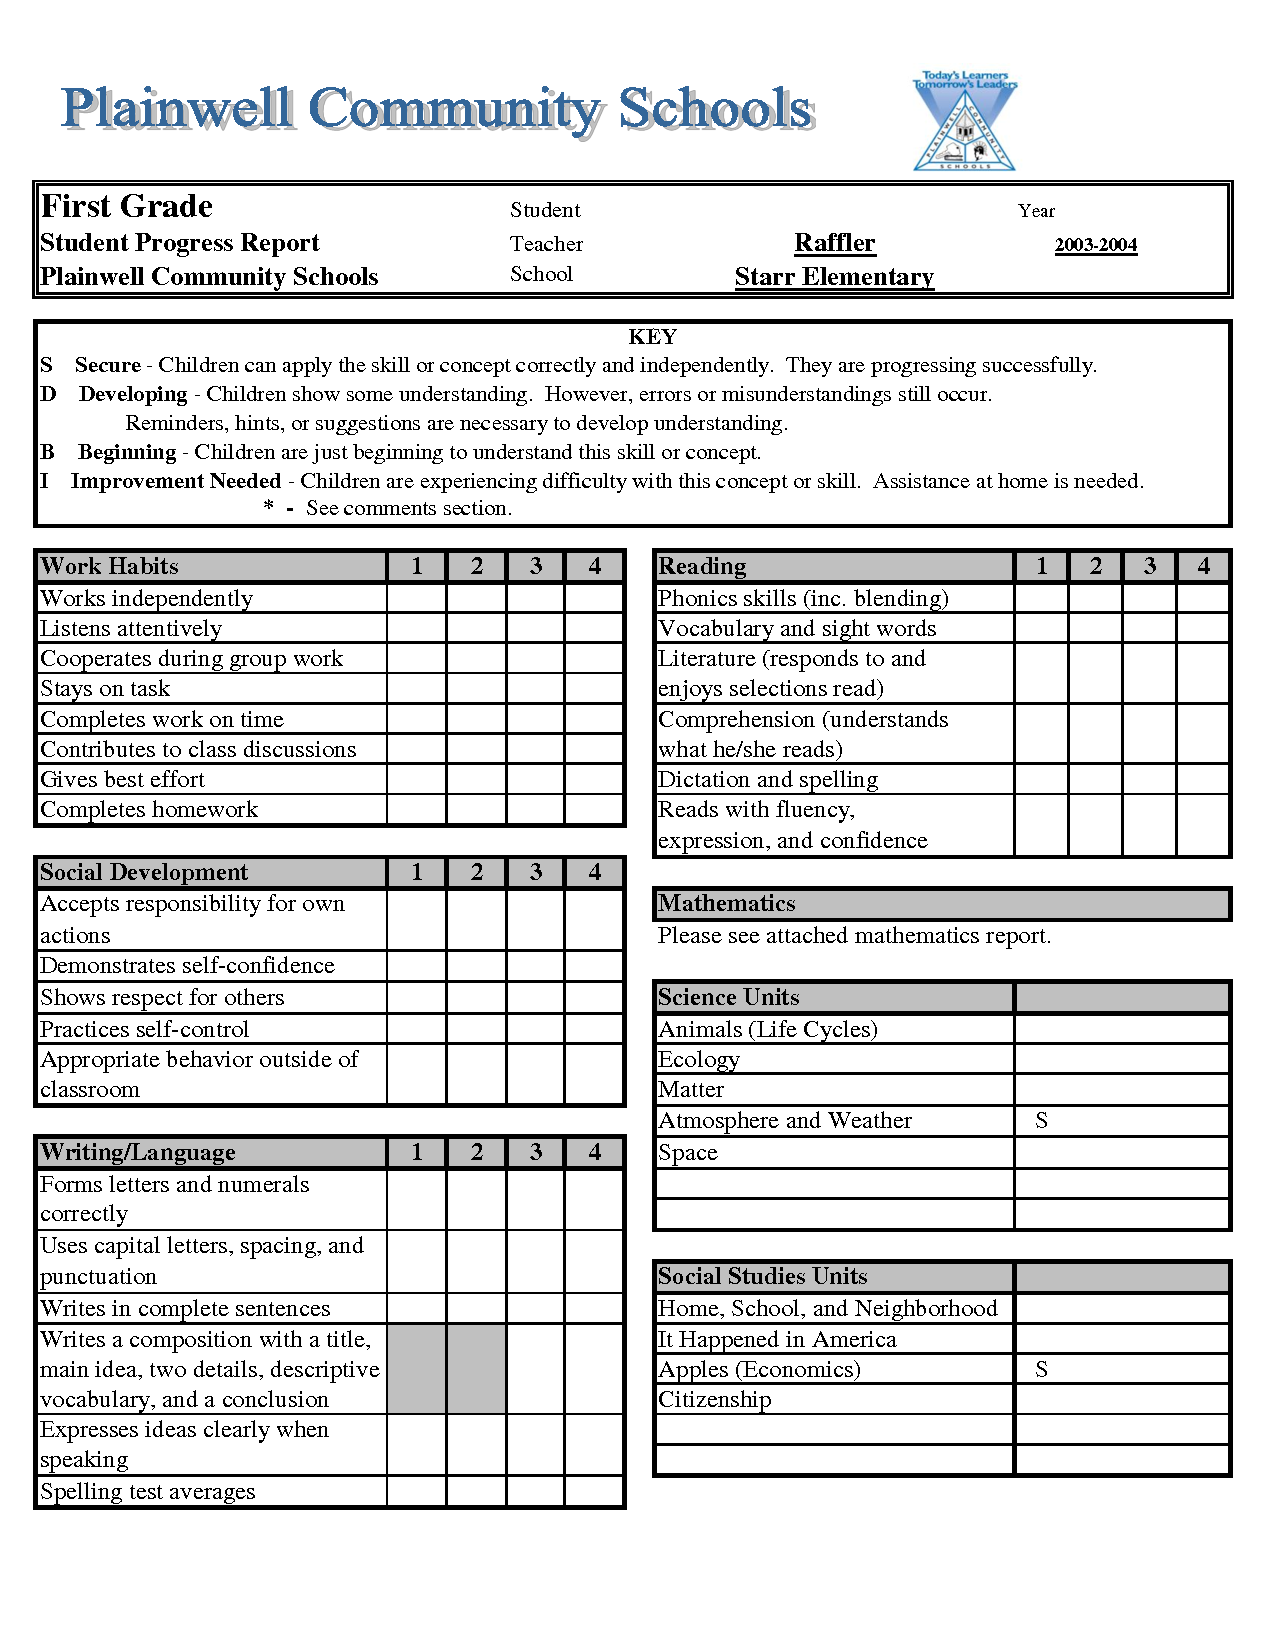 Report card template download legal documents for First grade progress report template